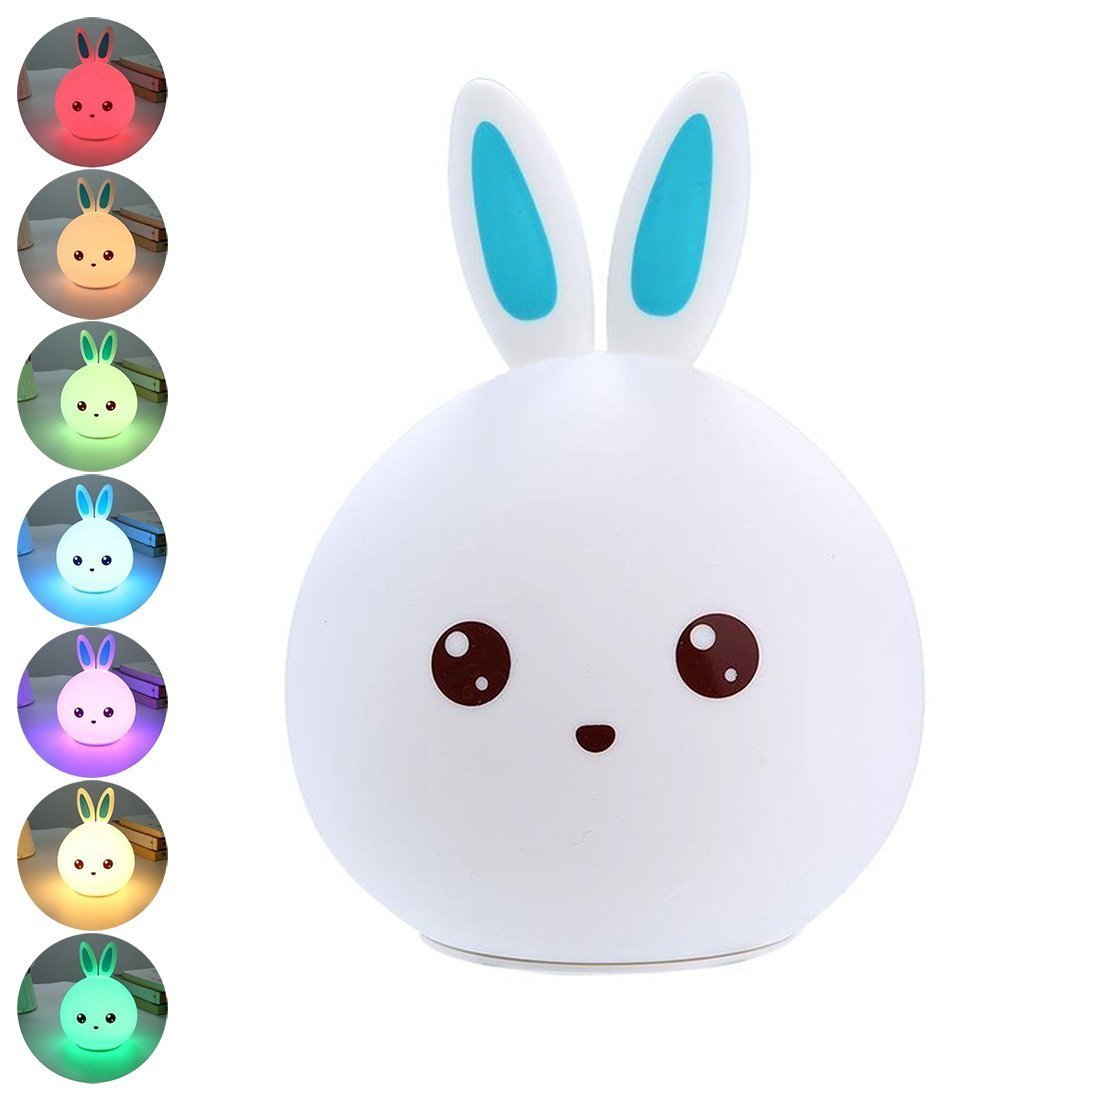 LED Silicone Rabbit Night Light Cute Soft Multicolor Touch Sensor Tap Control Baby USB Rechargeable Nursery Lamp Kid Bedside Toy